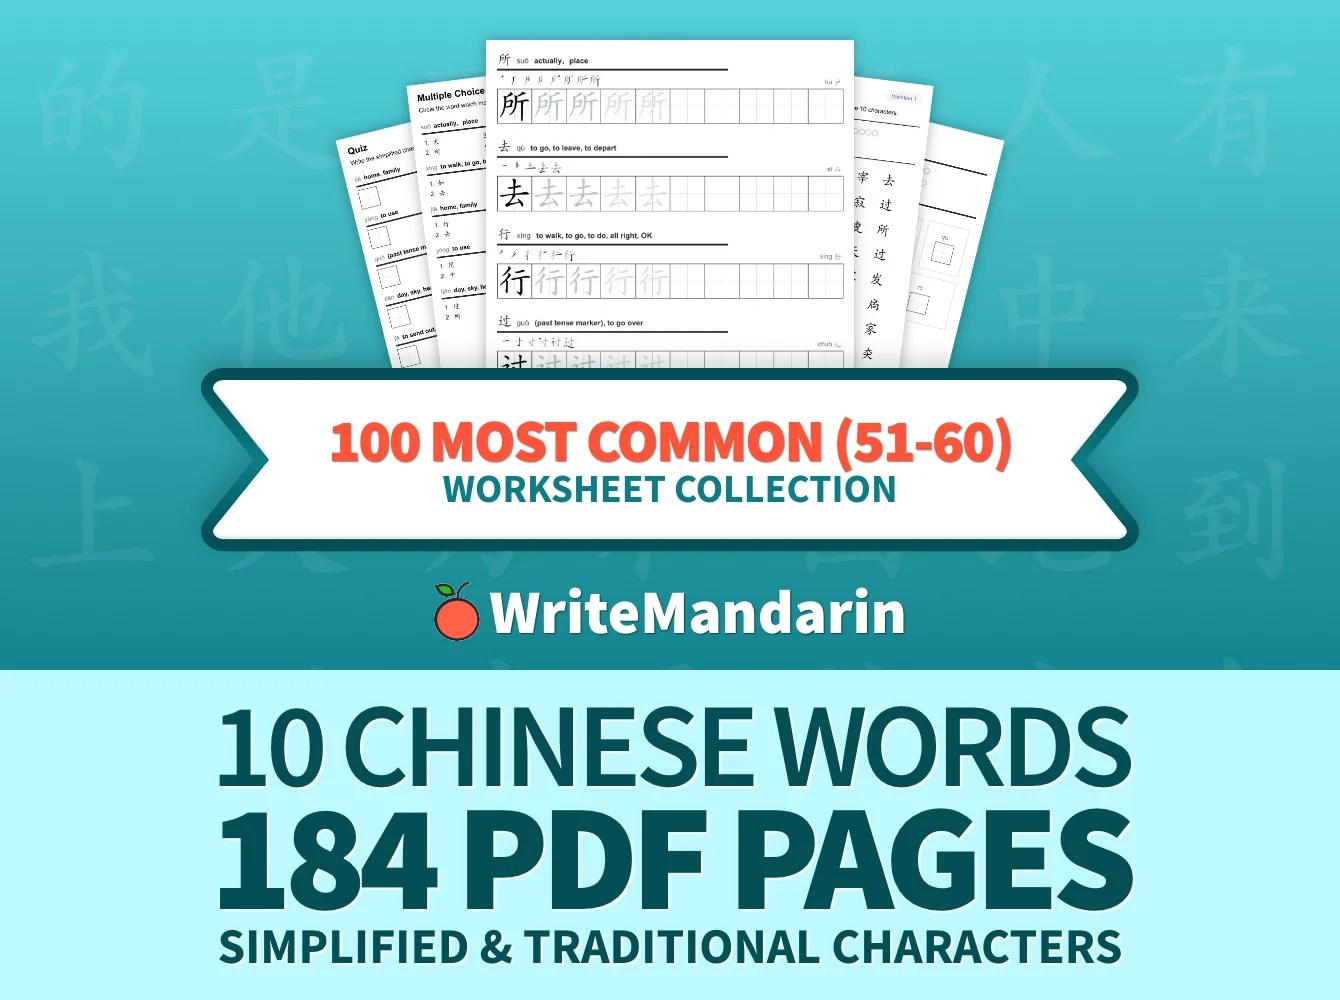 100 Most Common Characters 51 60